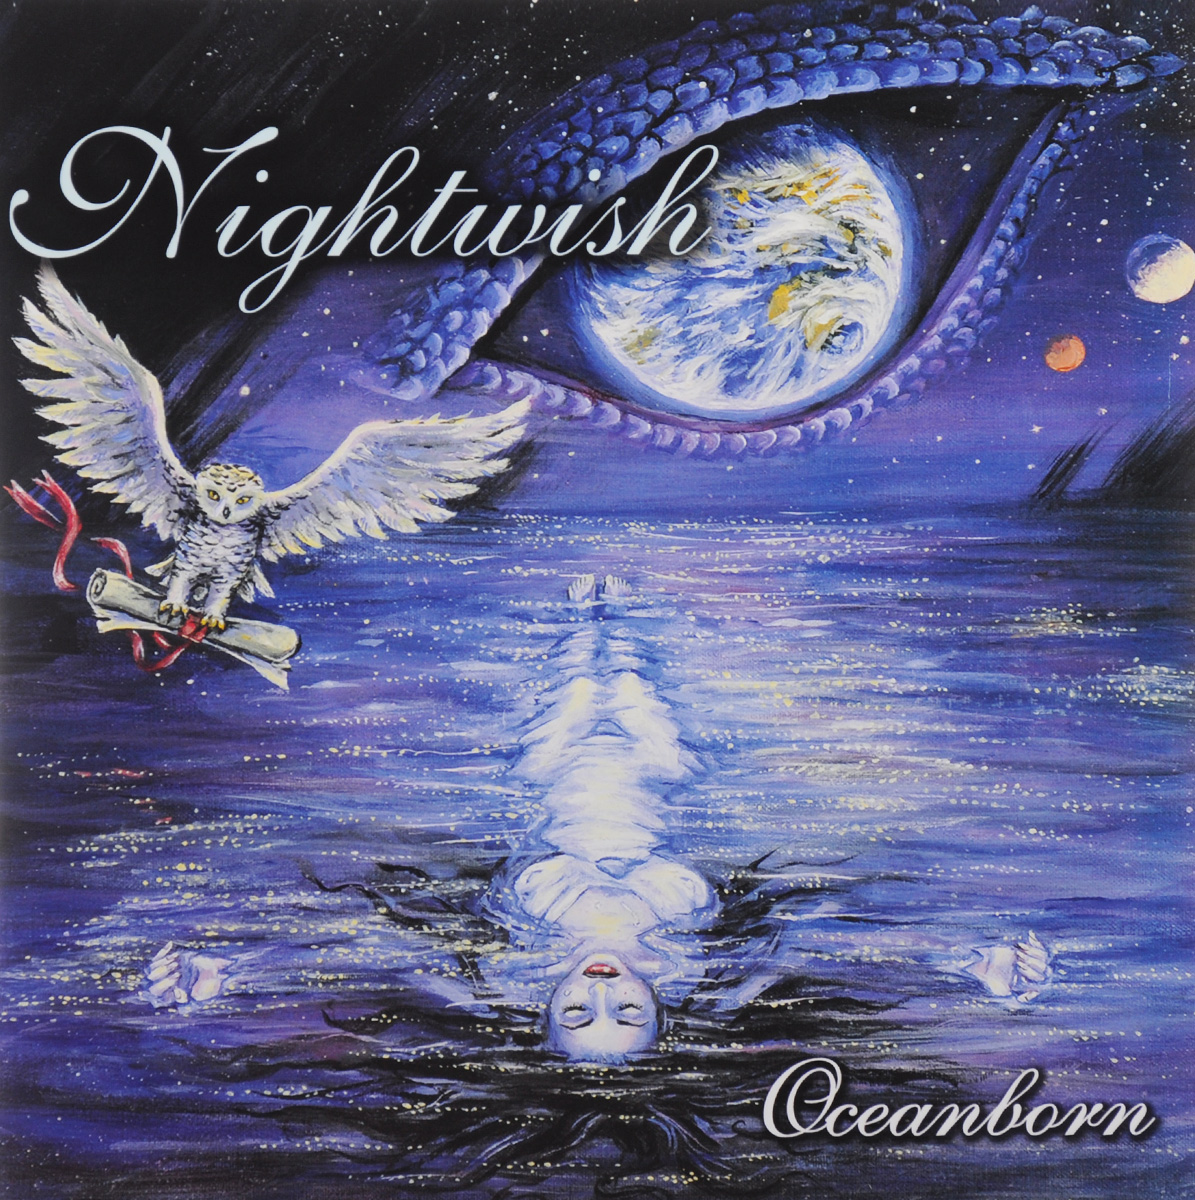 Nightwish Nightwish. Oceanborn (2 LP) nightwish nightwish over the hills and far away special celebration edition 2 lp